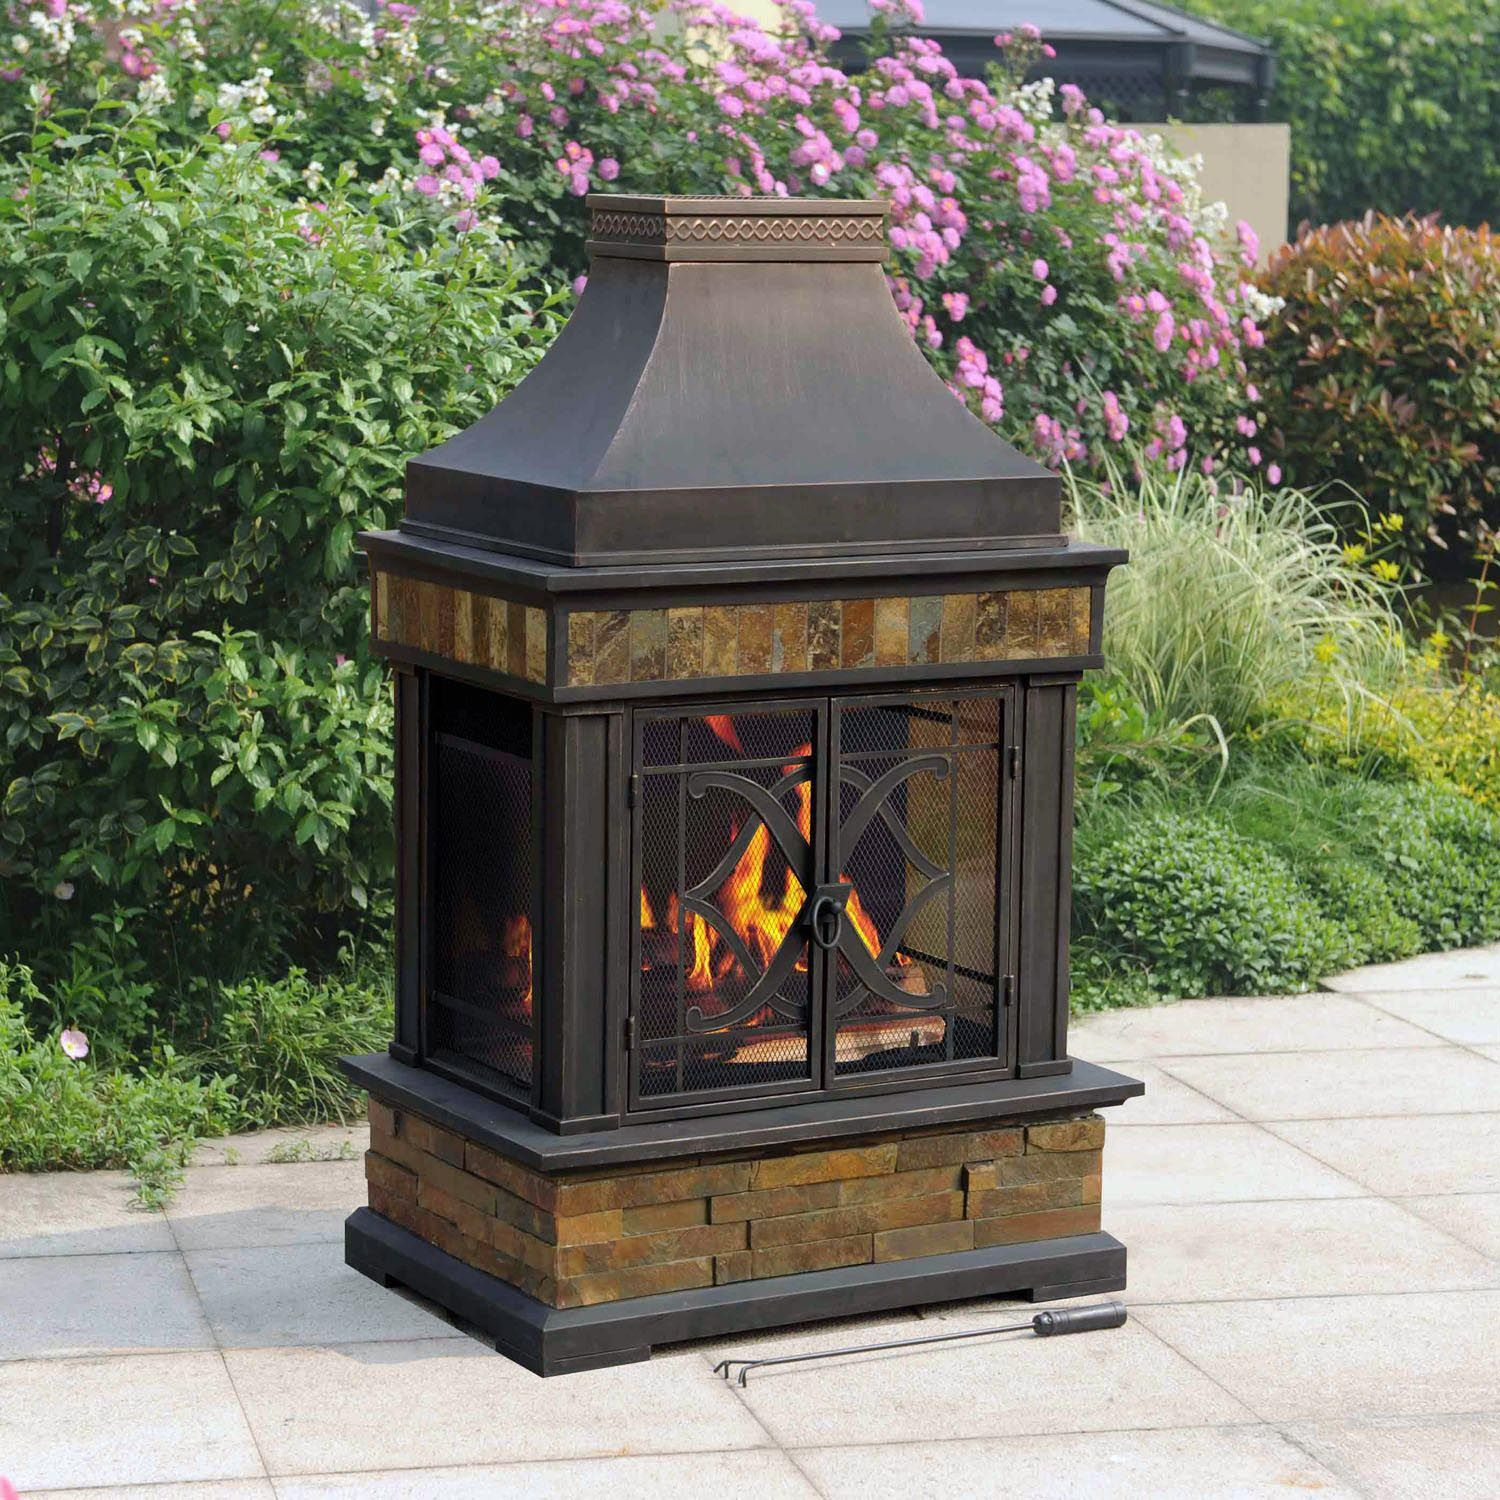 Outdoor Fire Pit Chimney Hood - Outdoor Fire Pit Chimney Hood Fire Pit Pinterest Outdoor